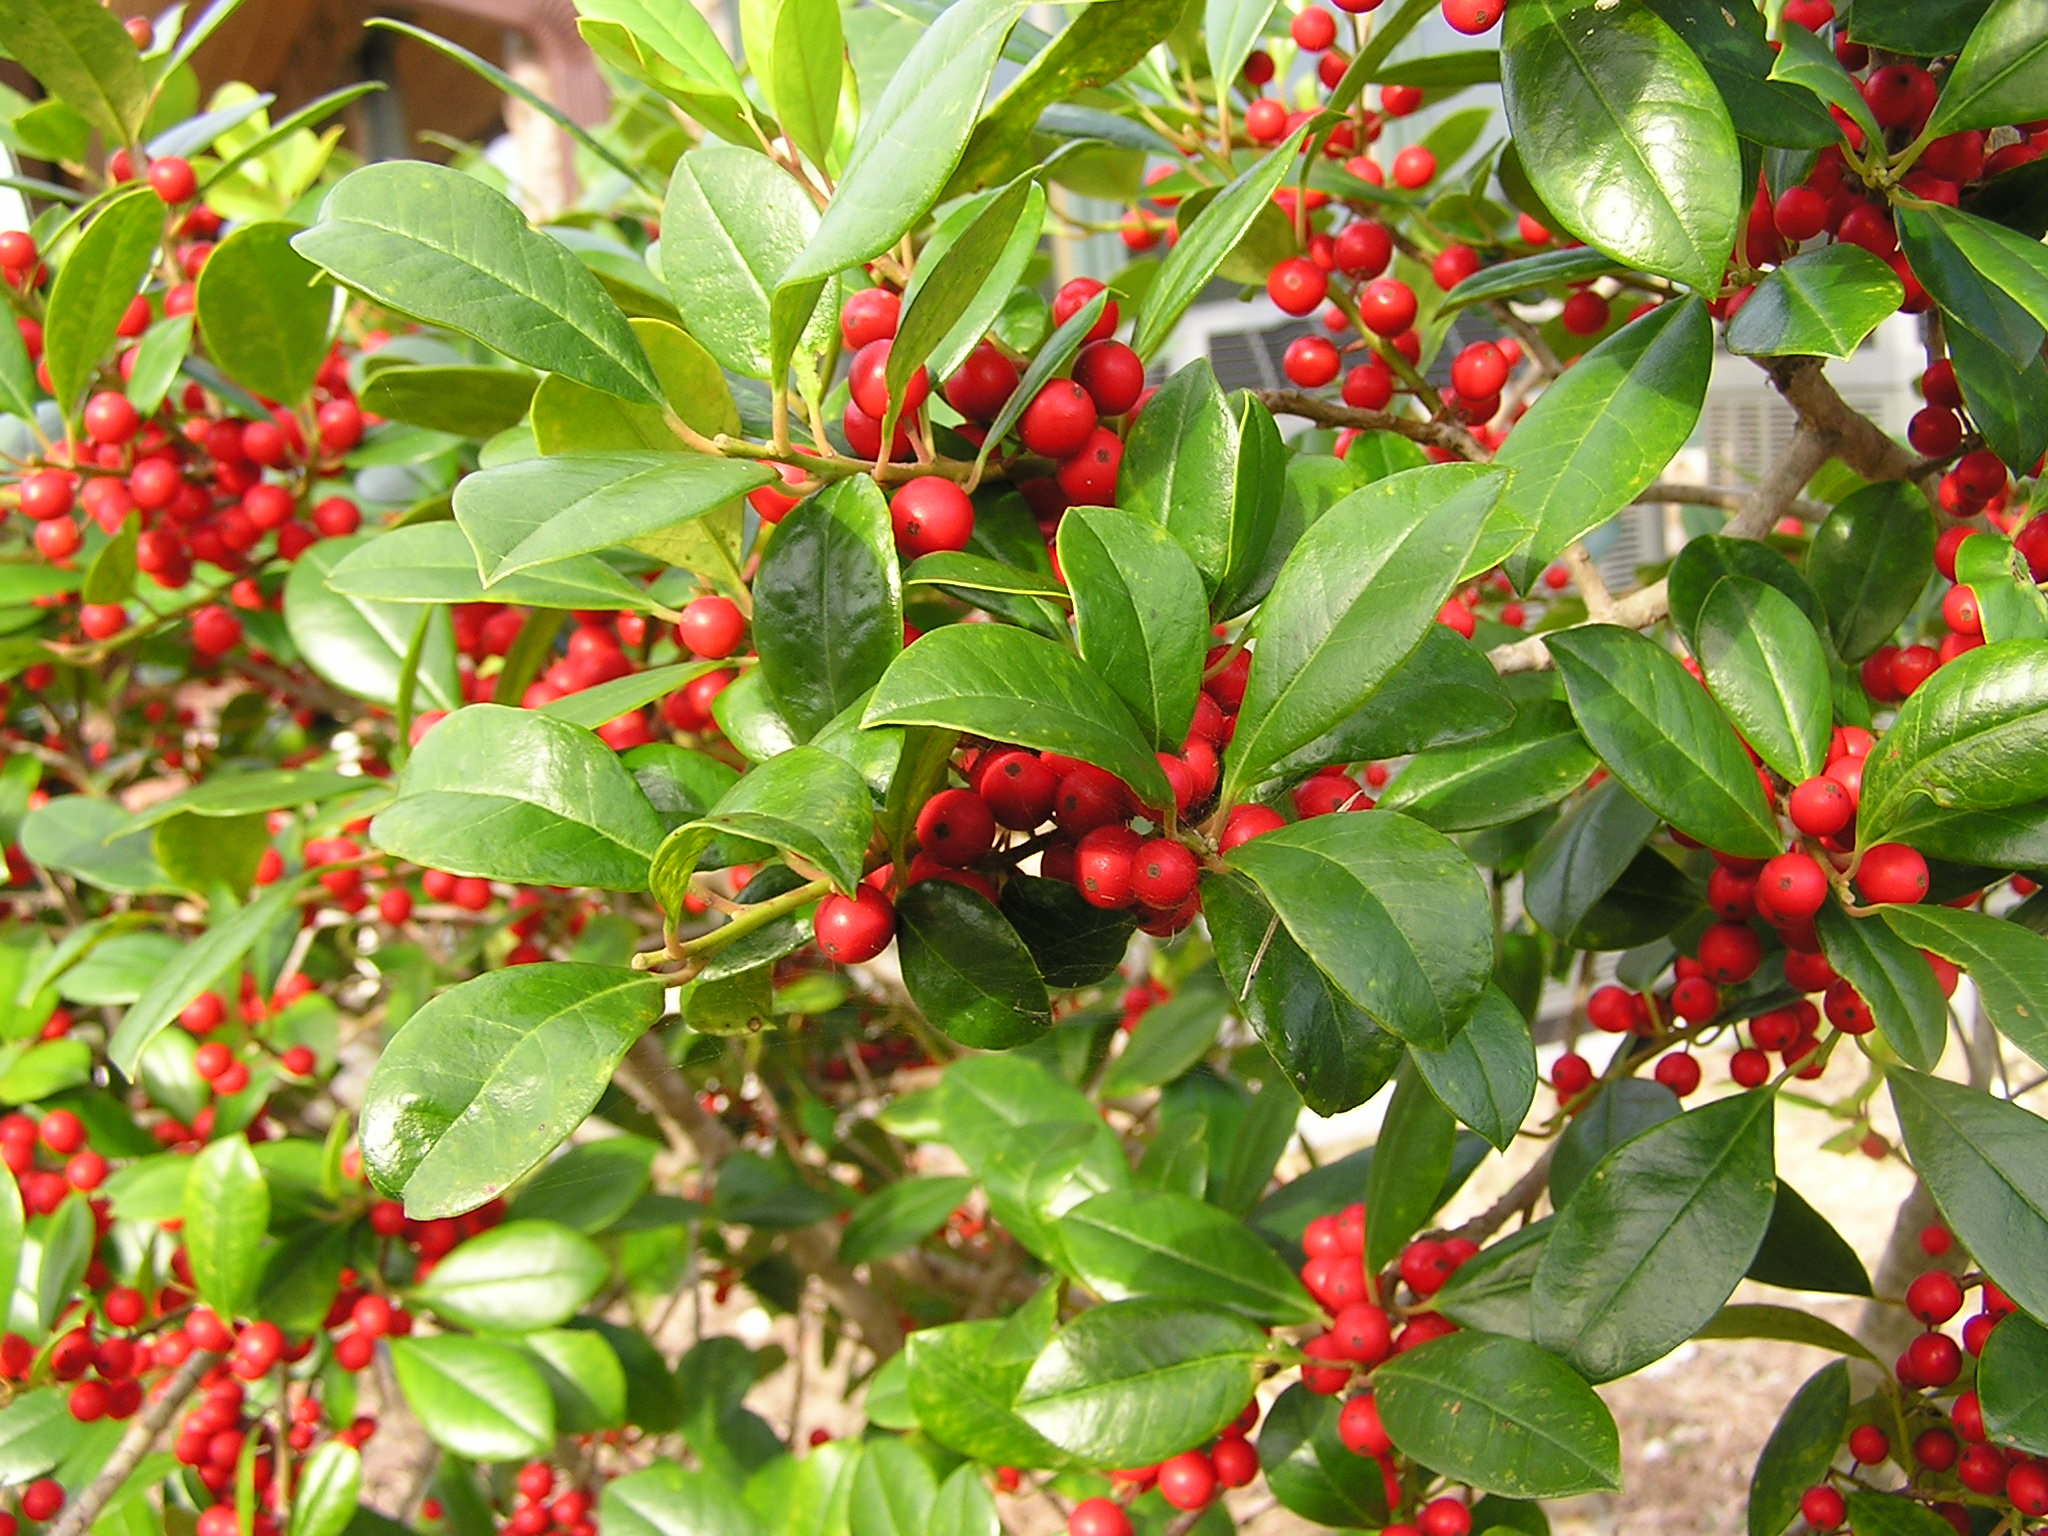 11726163-holly-plant-with-red-berries-Stock-Photo.jpg